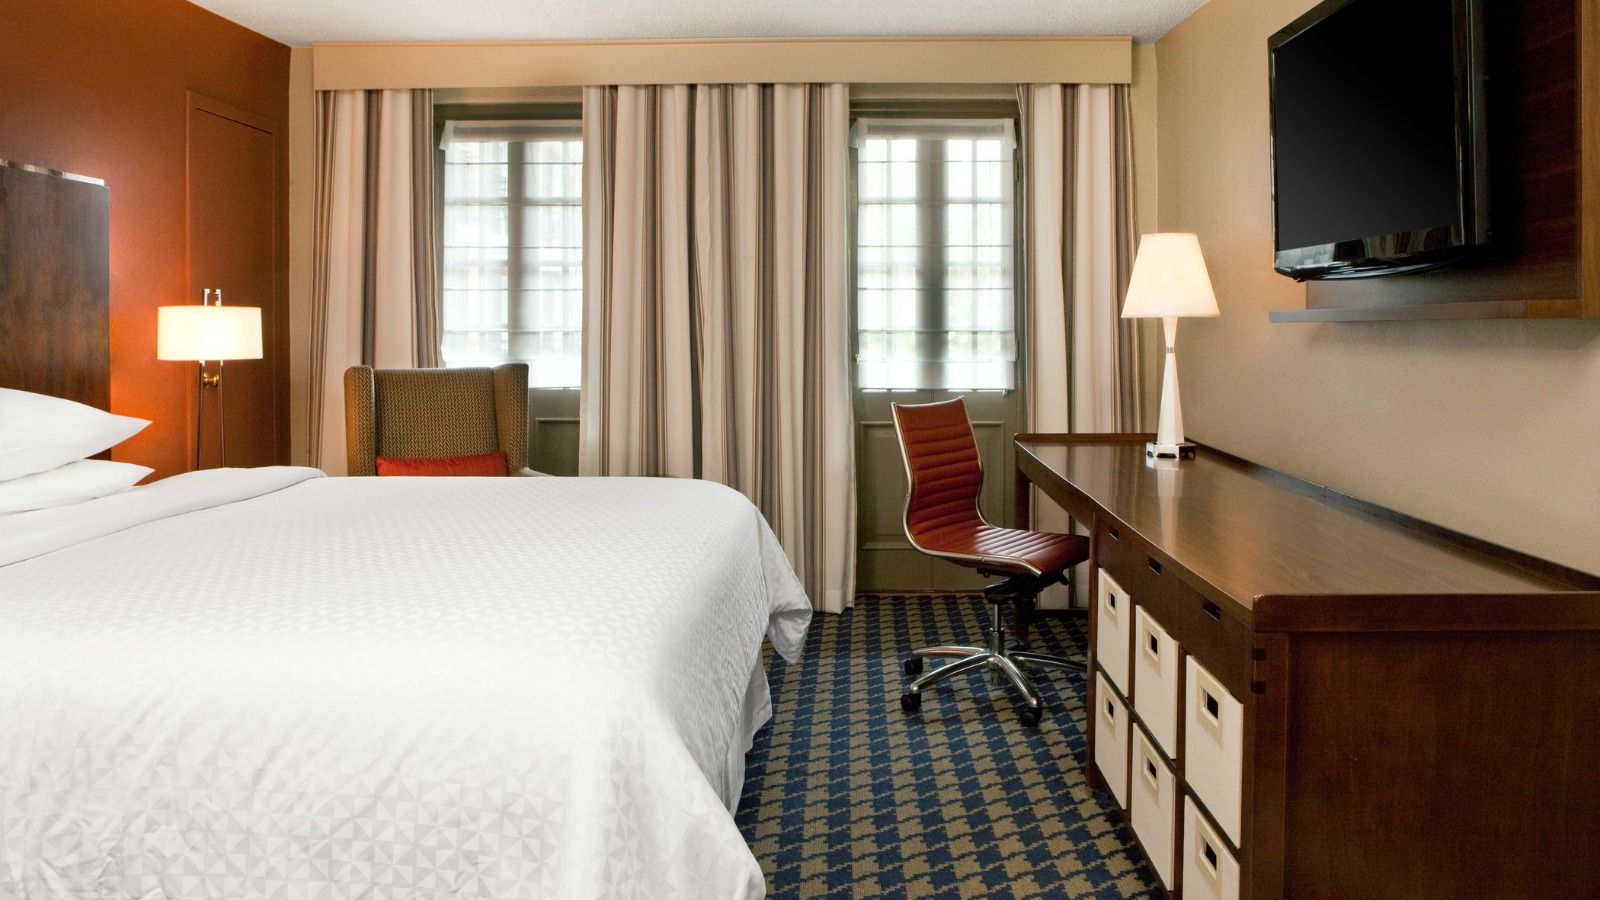 French Quarter Guest Rooms - King Room